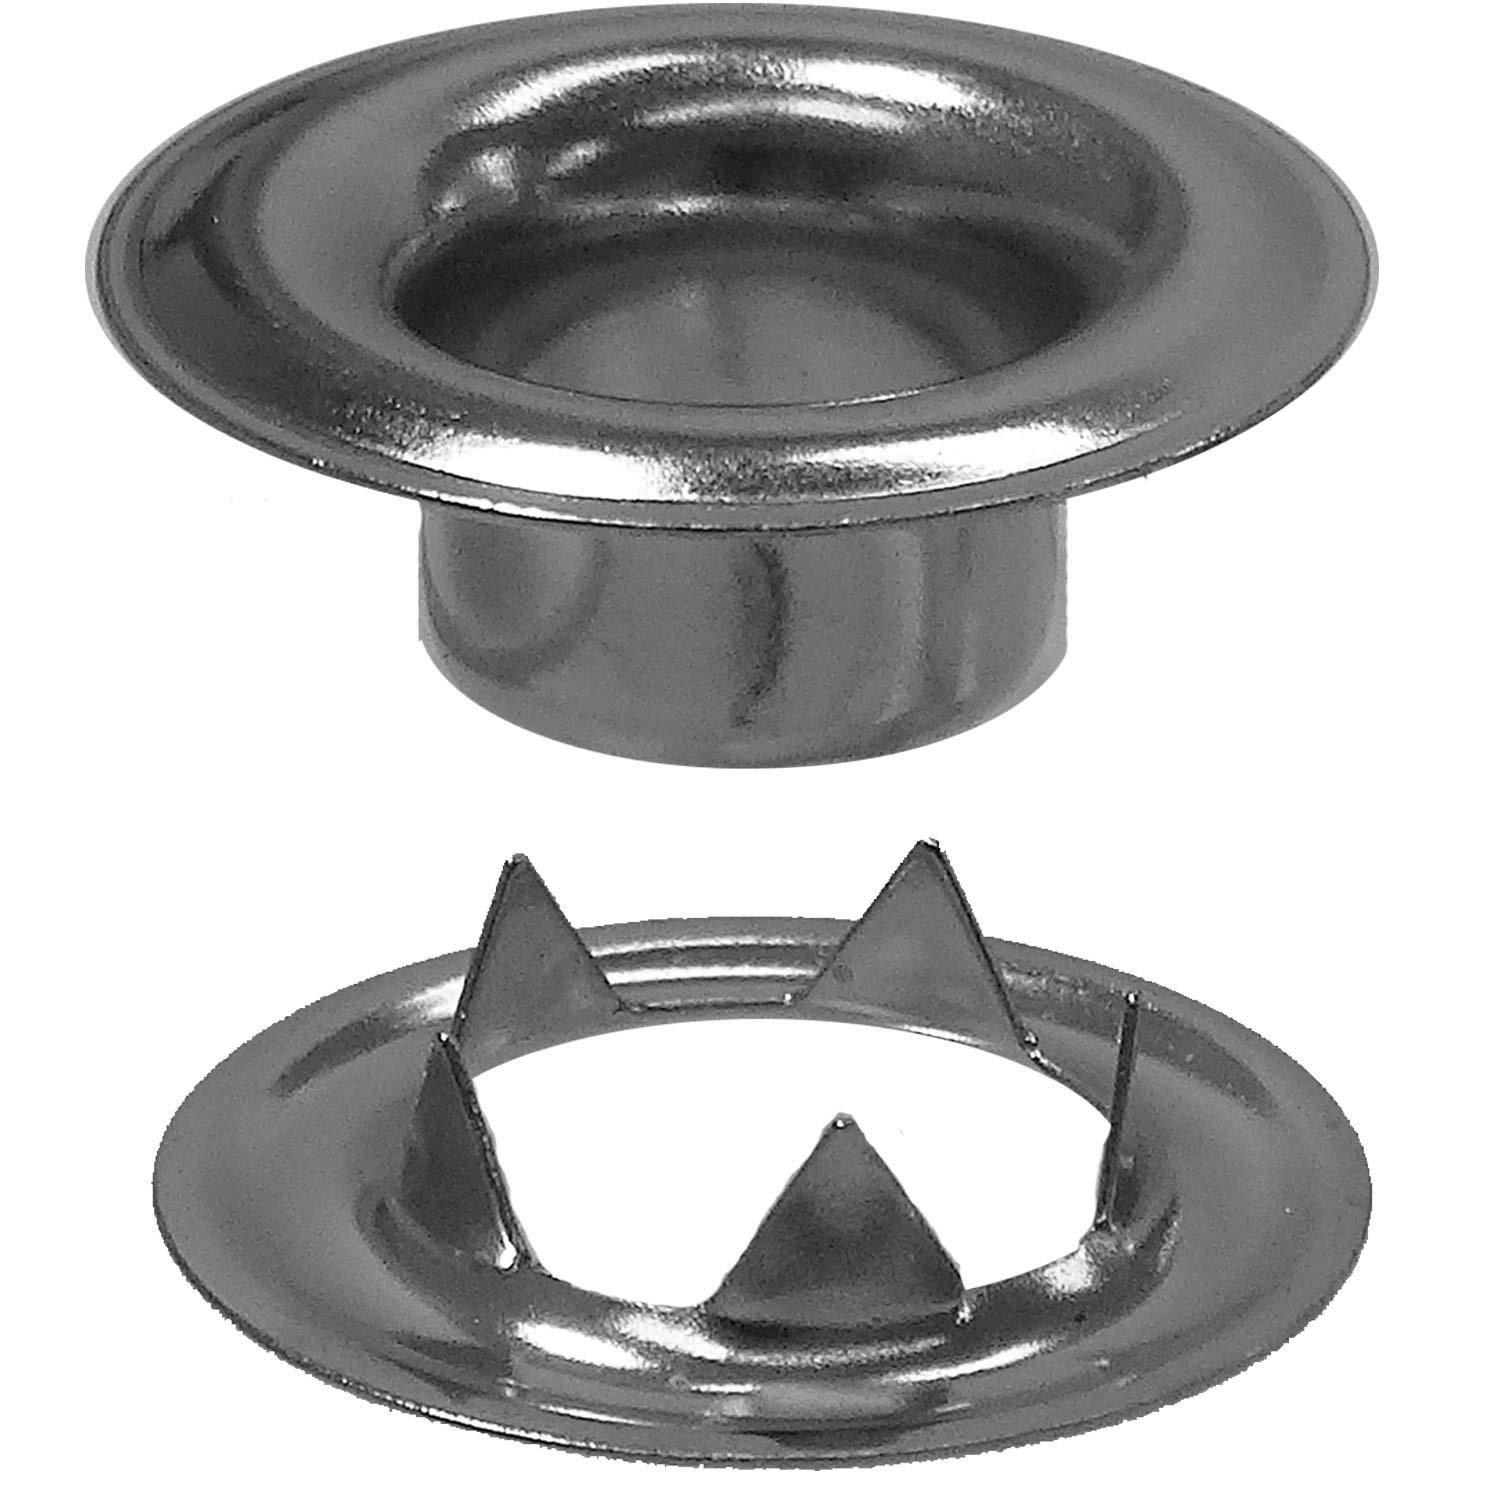 Stimpson Sheet Metal Grommet and Teeth Washer Nickel-Plated Durable, Reliable, Heavy-Duty #0 Set (14,400 Pieces of Each) by Stimpson Co., Inc. (Image #1)